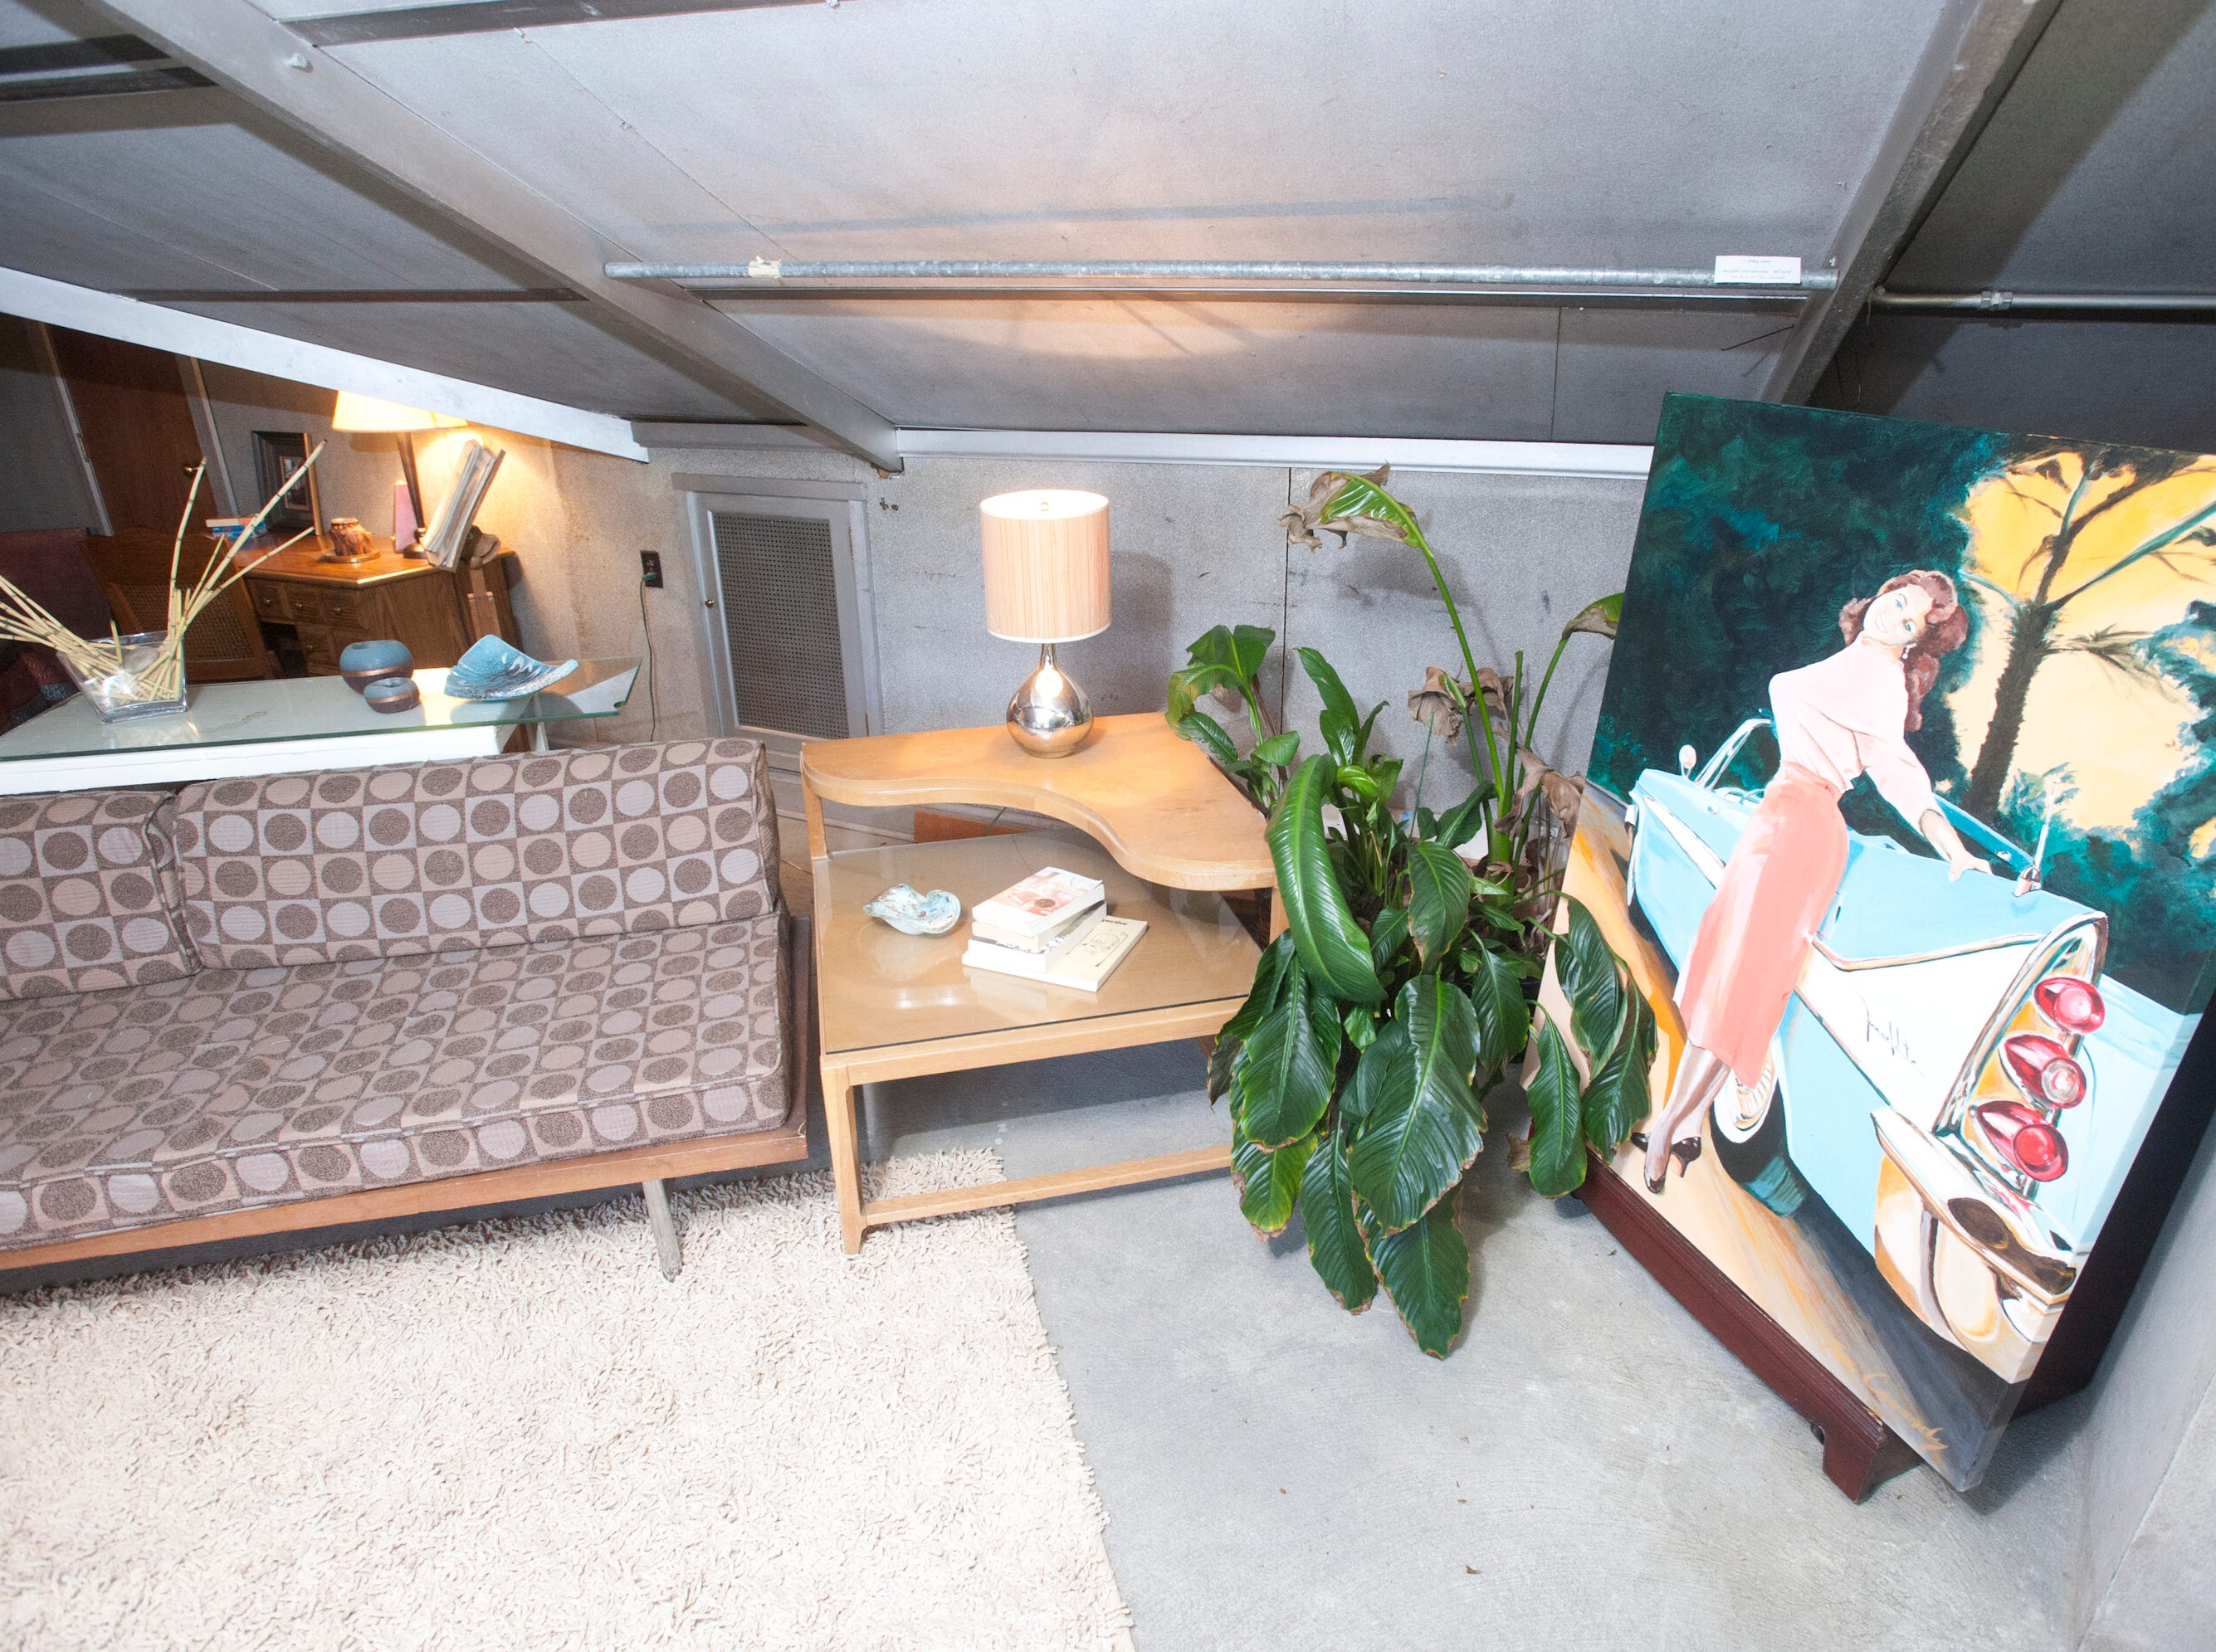 """The home's attic has been converted to livable space where Cannady has his artist studio and a spare bed. At right is Cannady's painting, """"Miss Lube Rack.""""10 December 2018"""